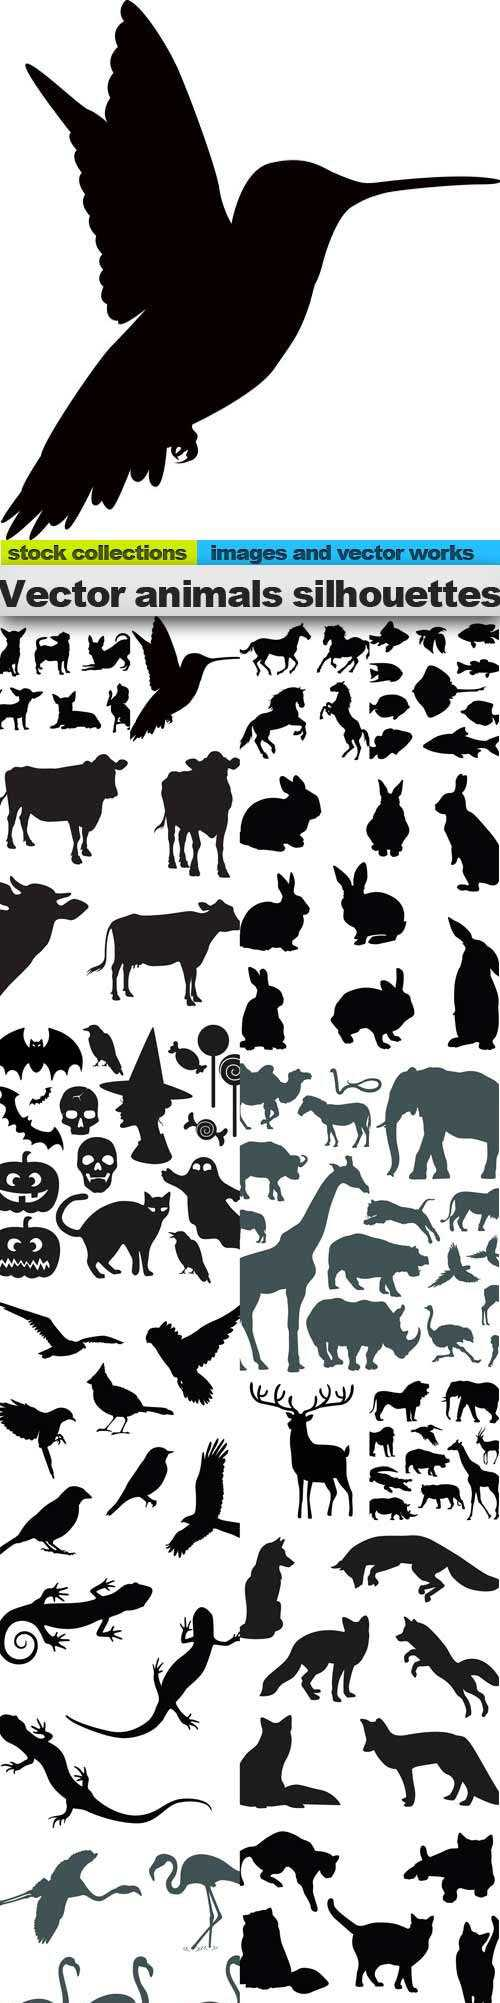 Vector animals silhouettes 3